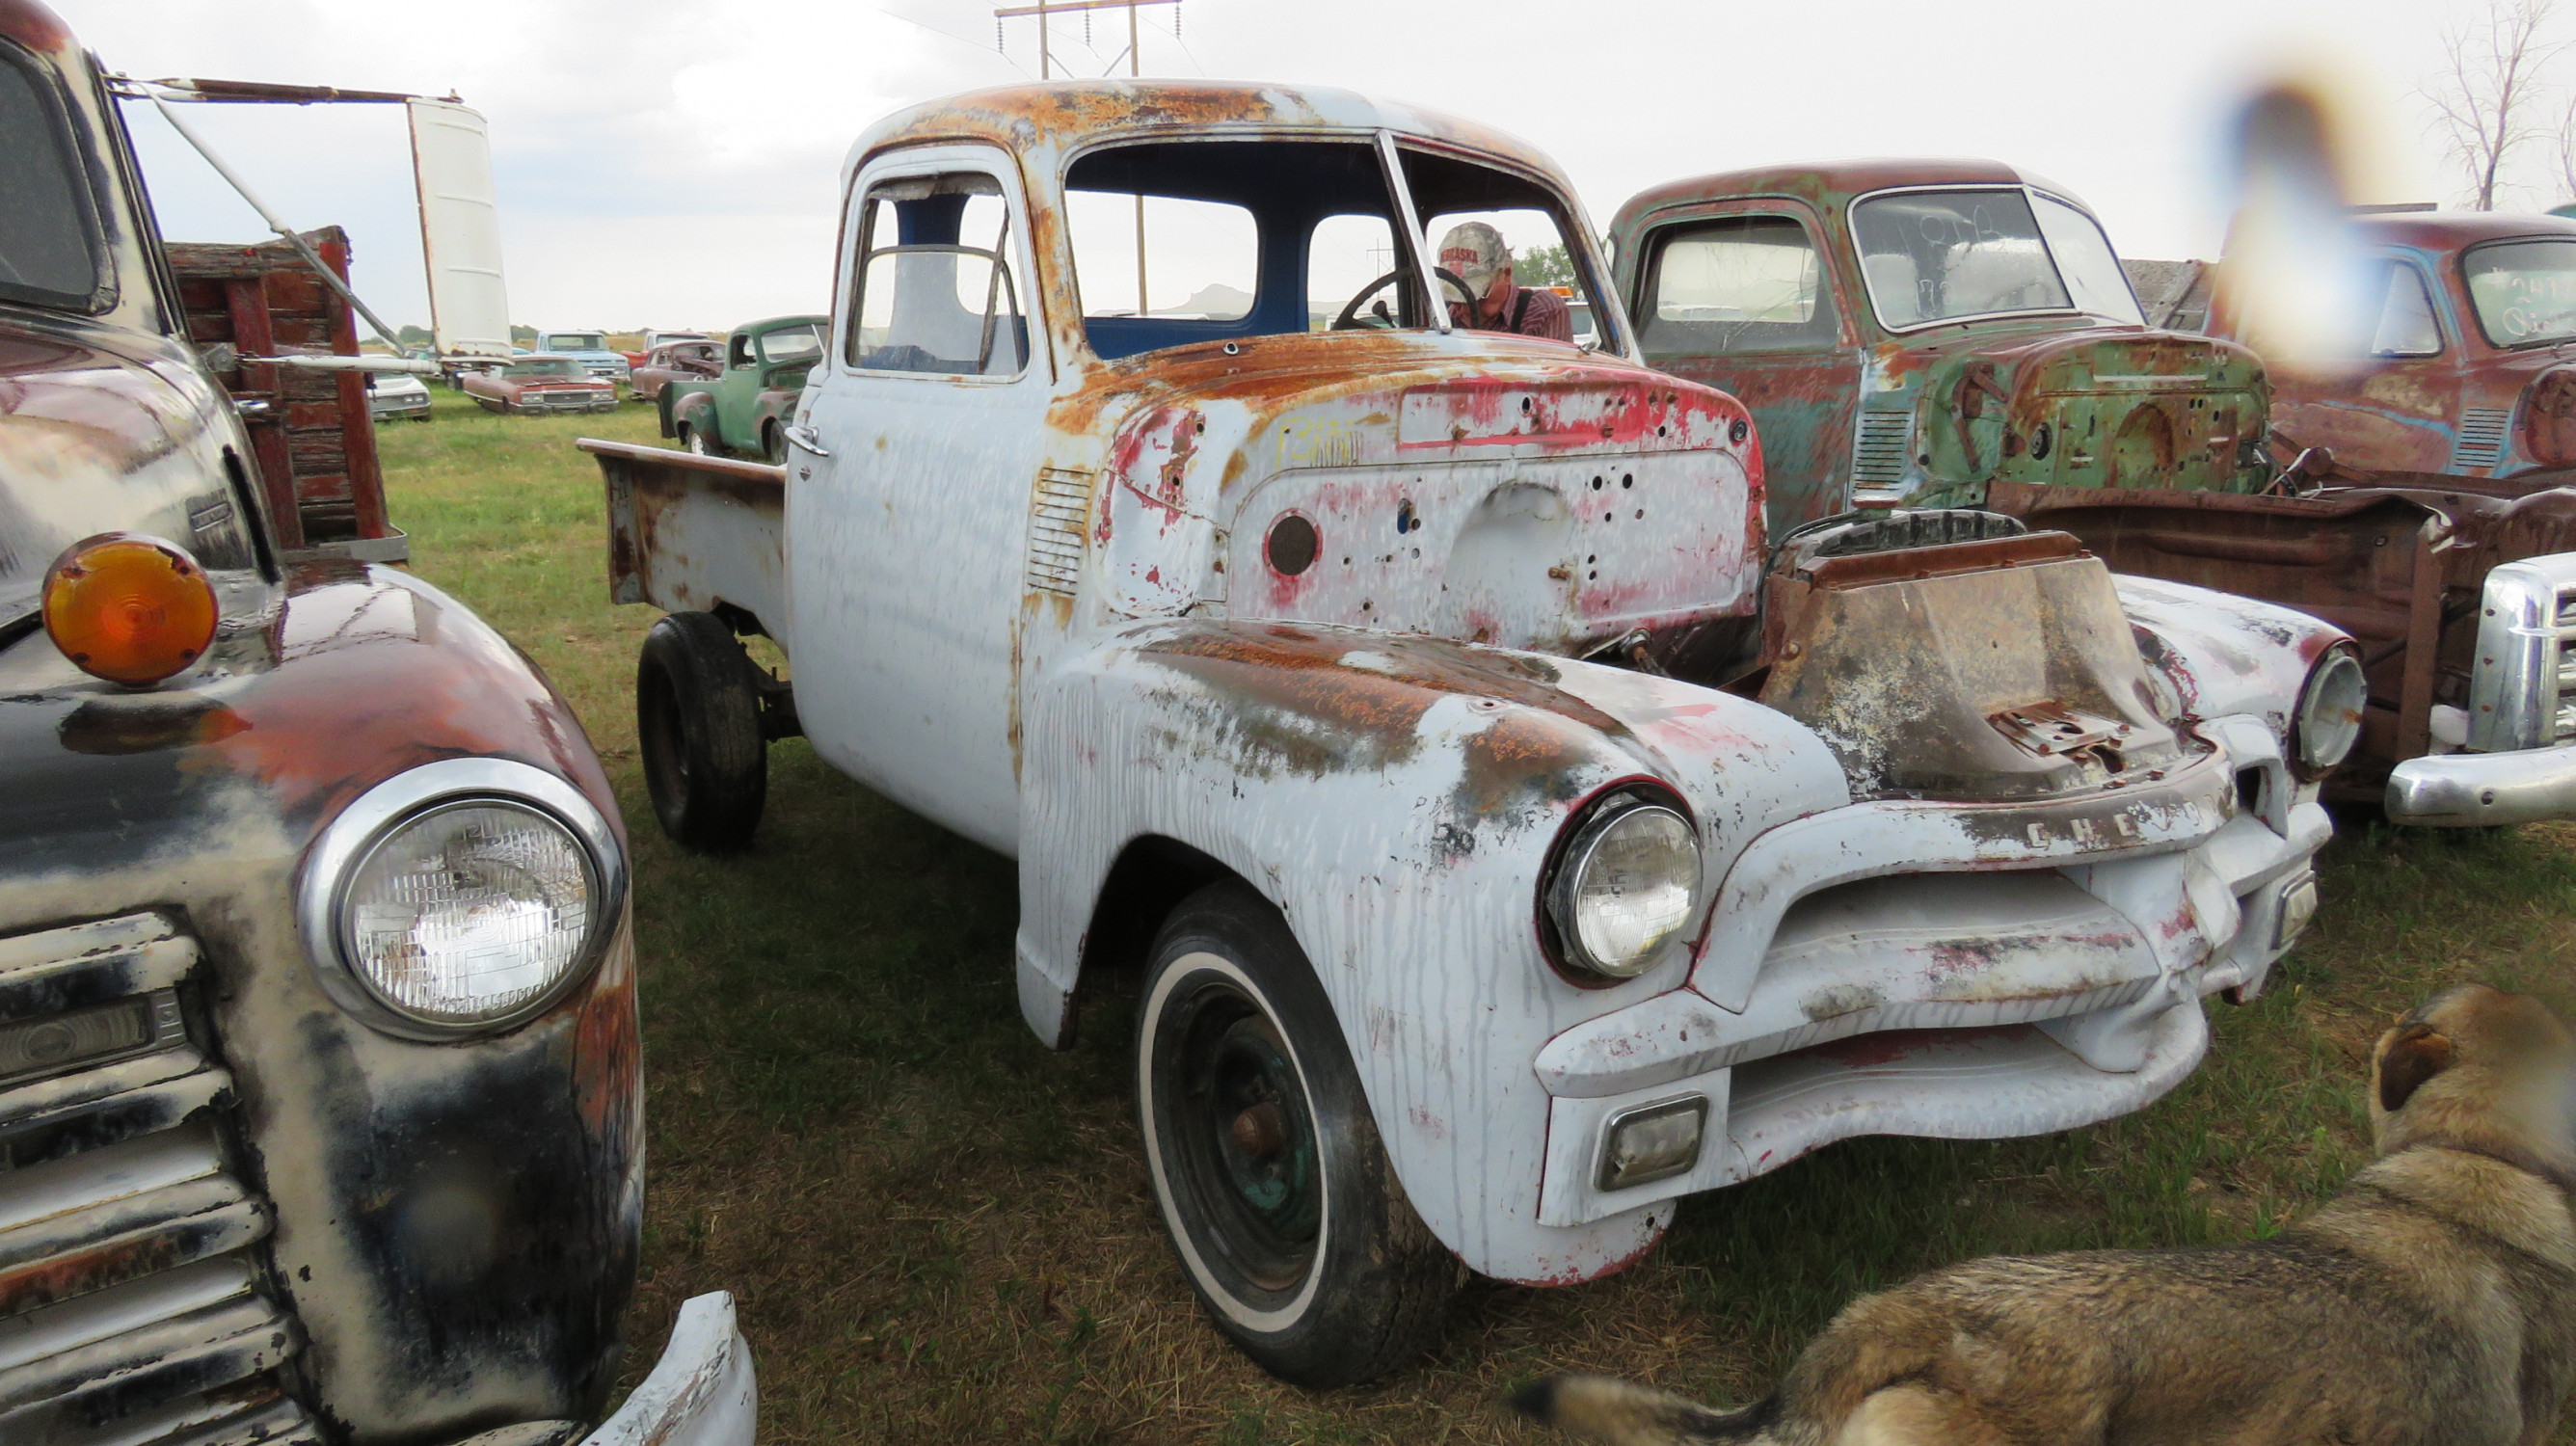 1954 CHEVROLET 5 WINDOW PICKUP PROJECT - Image 1